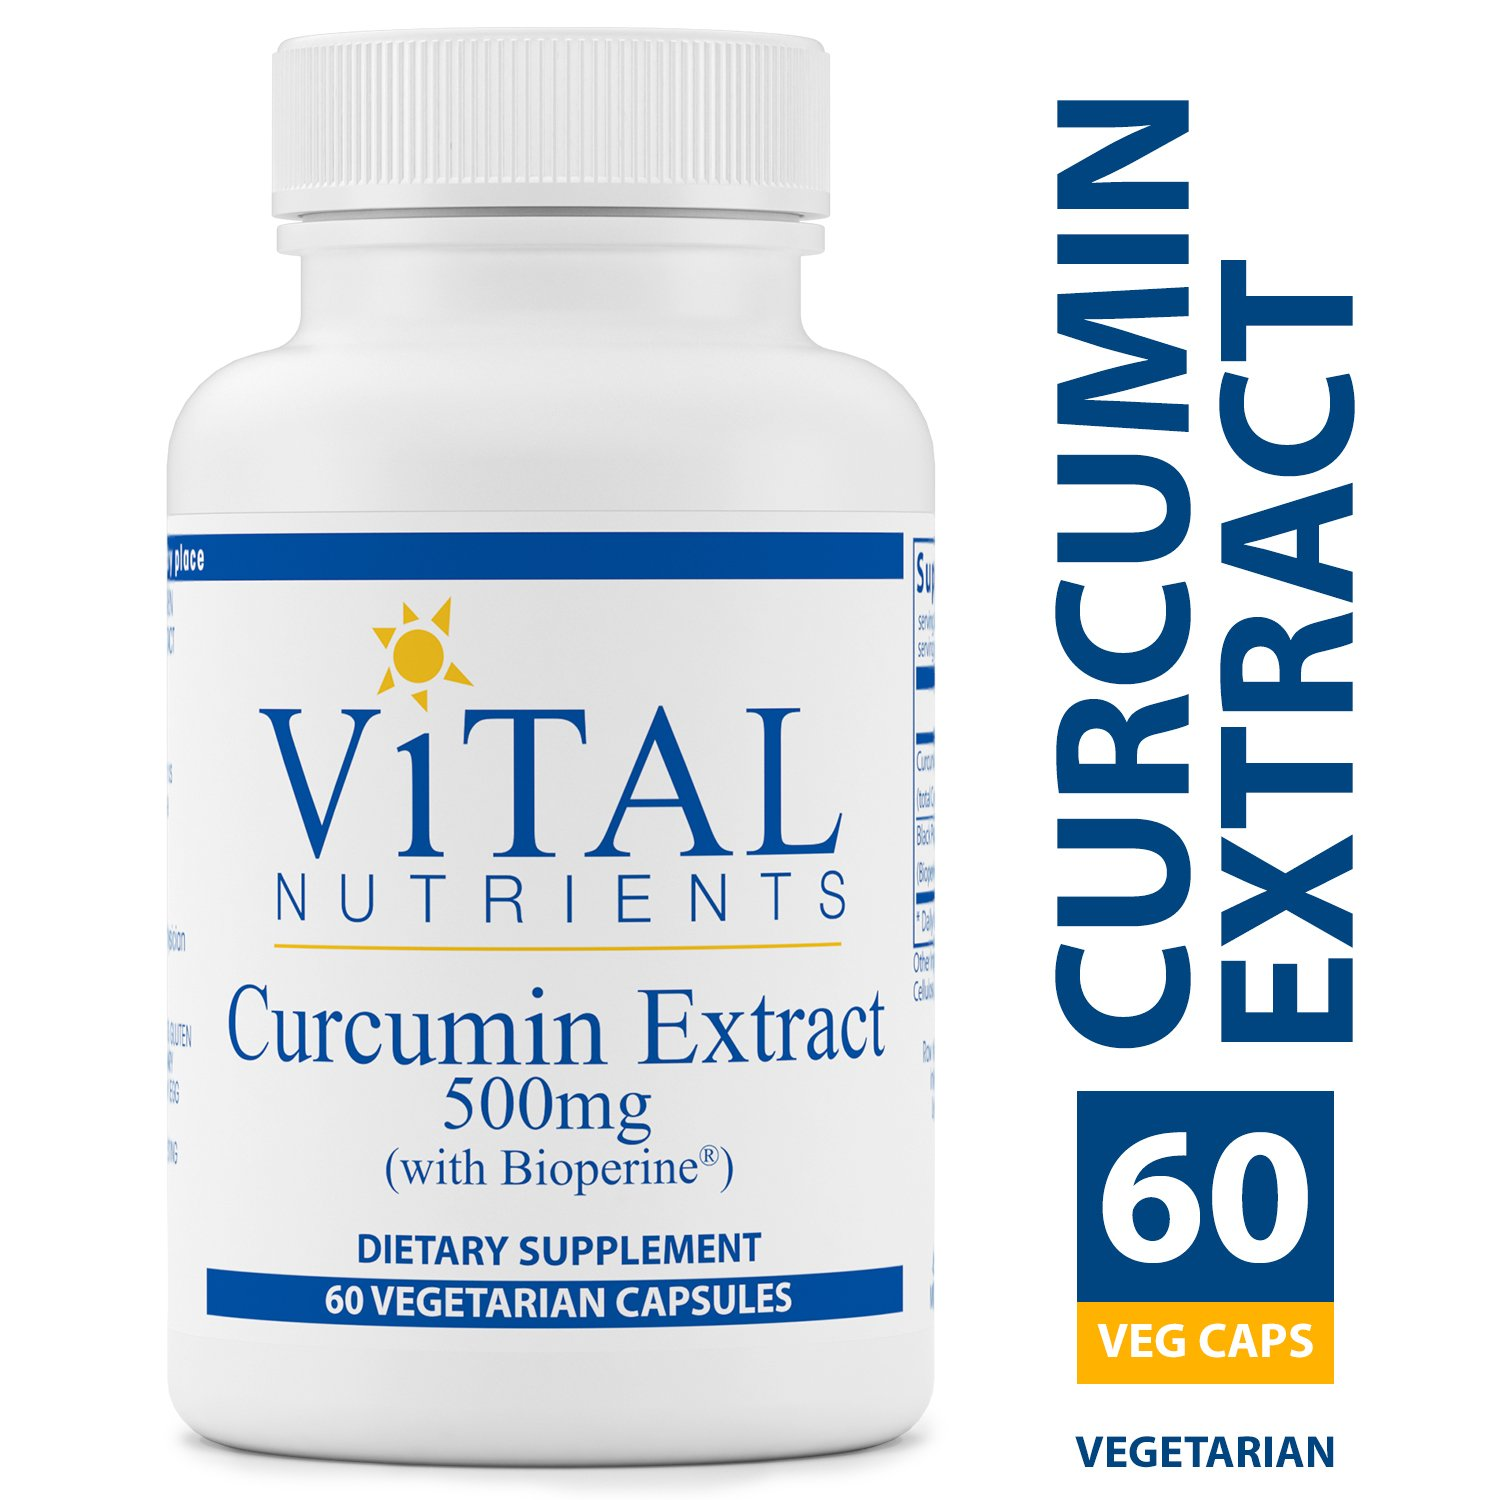 Vital Nutrients - Curcumin Extract 500 mg (with Bioperine) - Nutritional Support for Normal